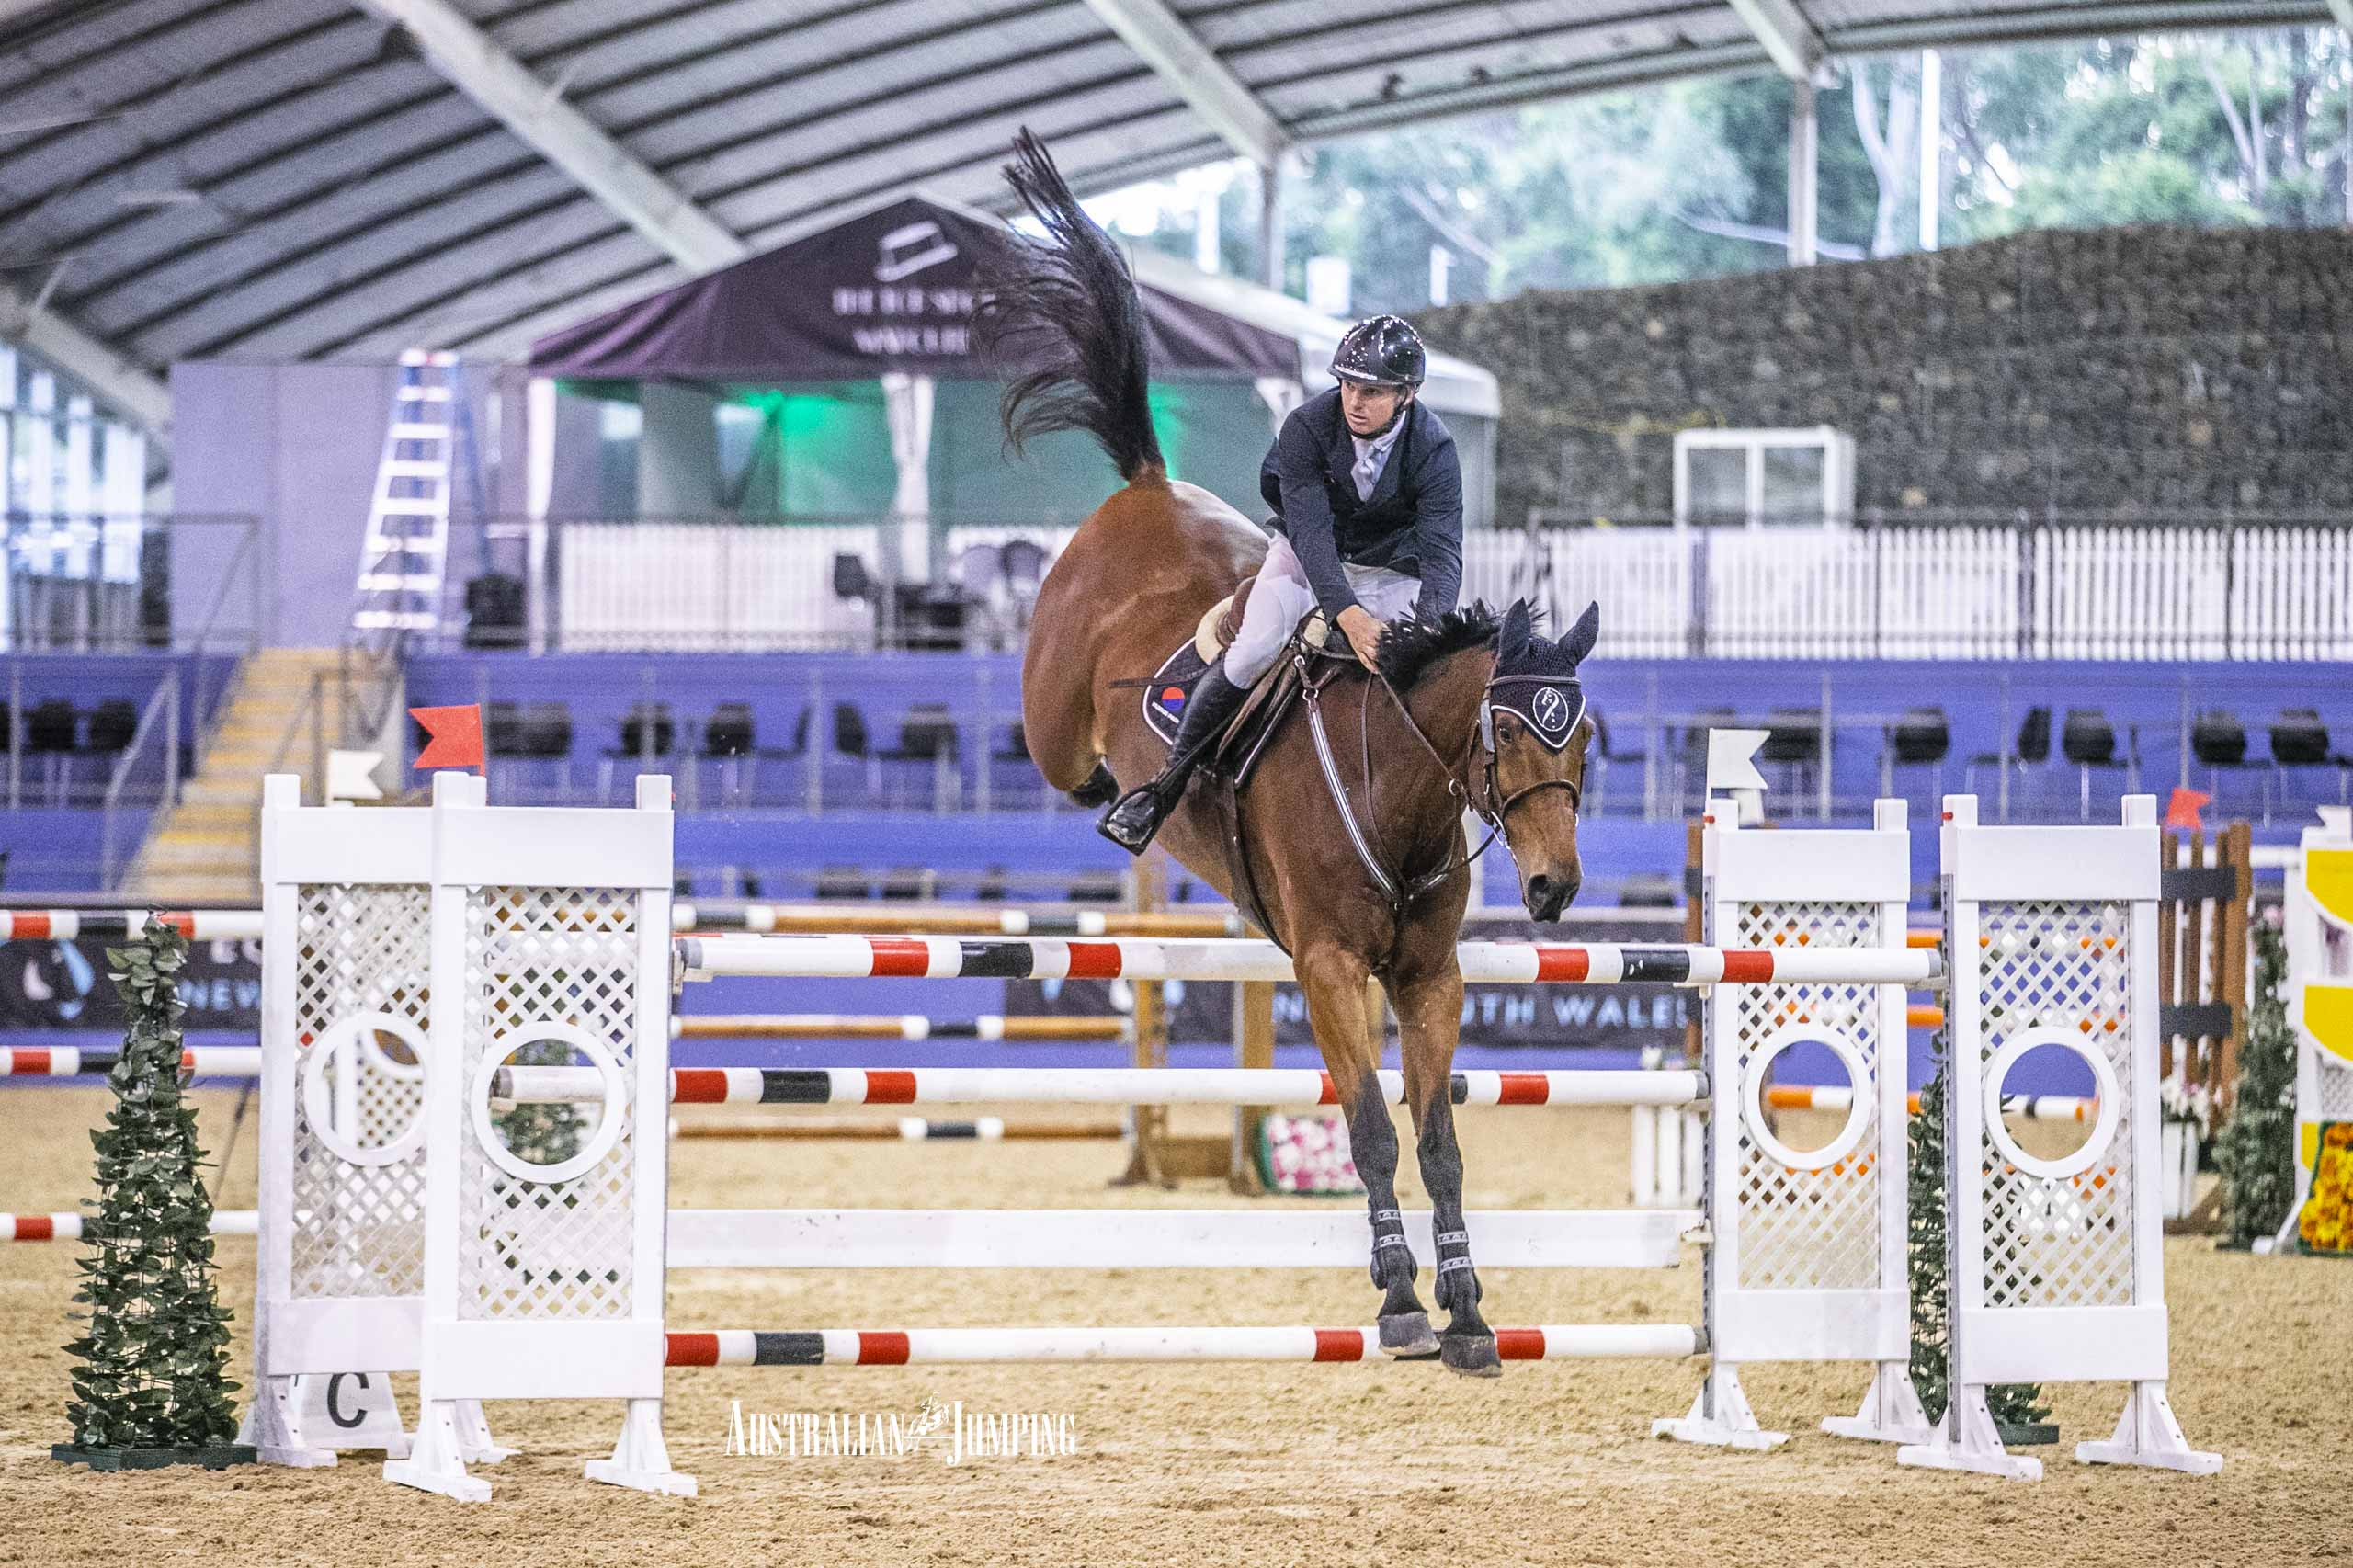 A tale of success for Jamie Kermond at the JNSW Autumn Classic